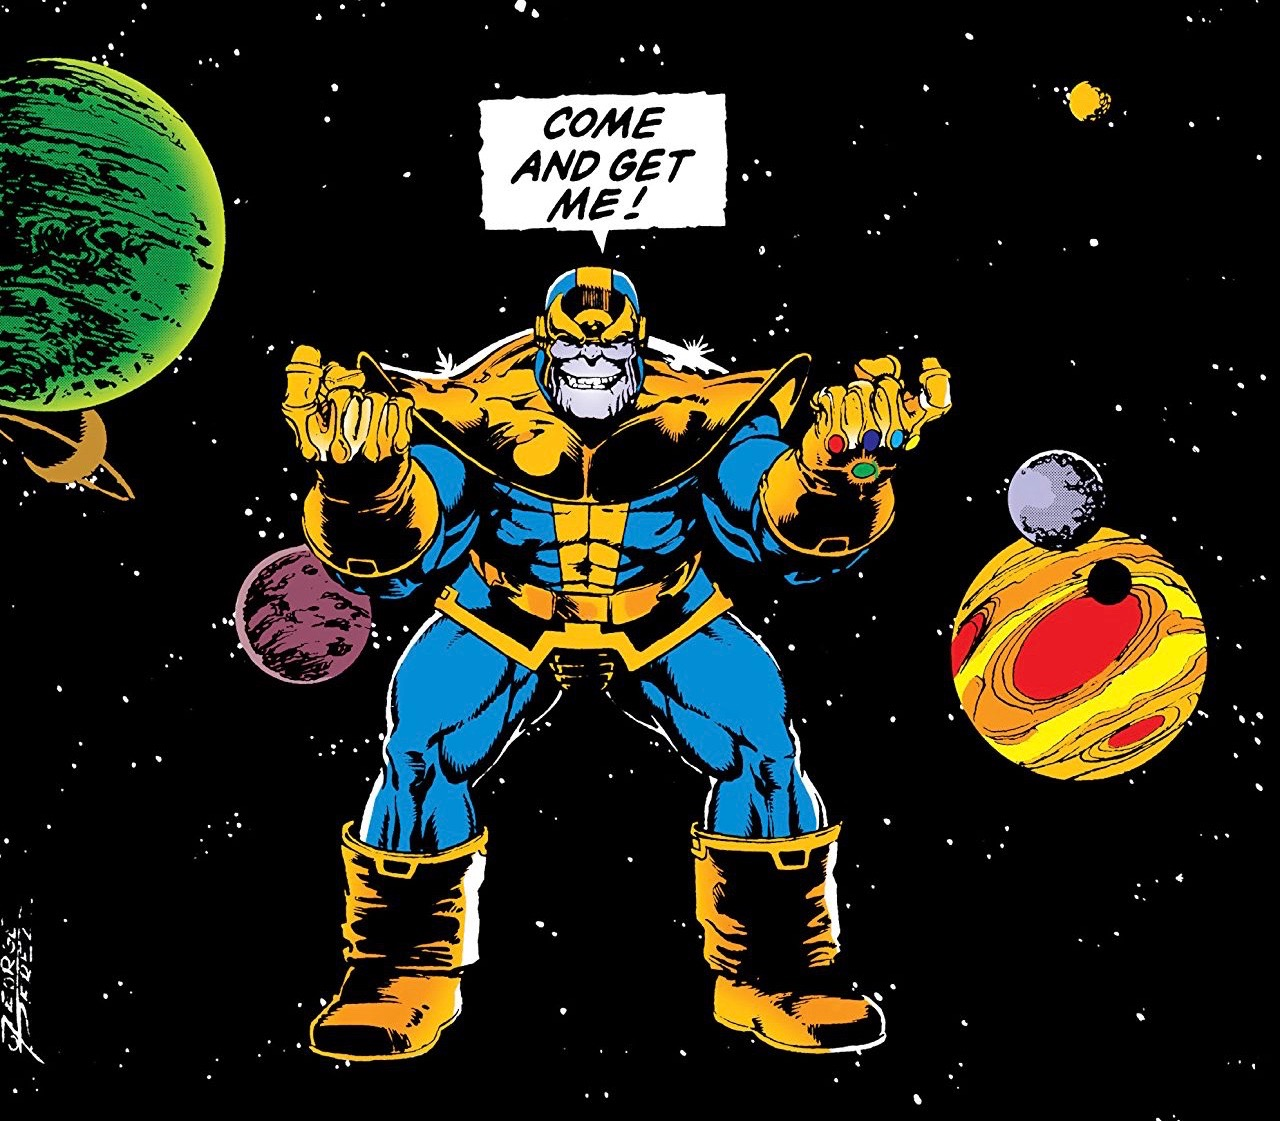 We all know online trolls will try to spoil Avengers: Infinity War, so here are some ways Thanos can punish these monsters.